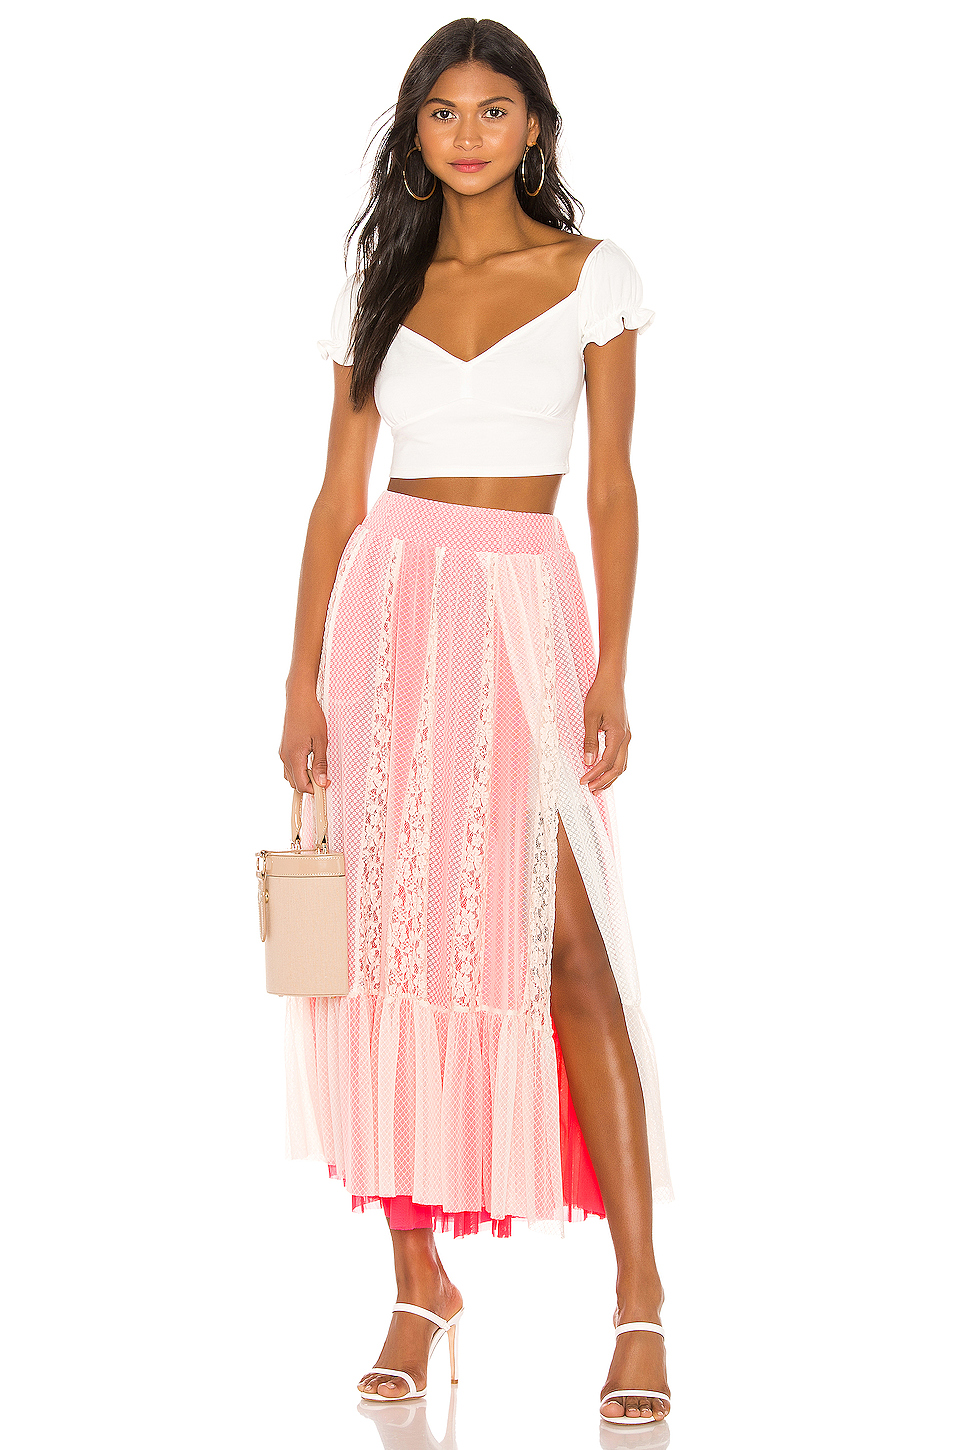 Hot As Hell Far Out Skirt